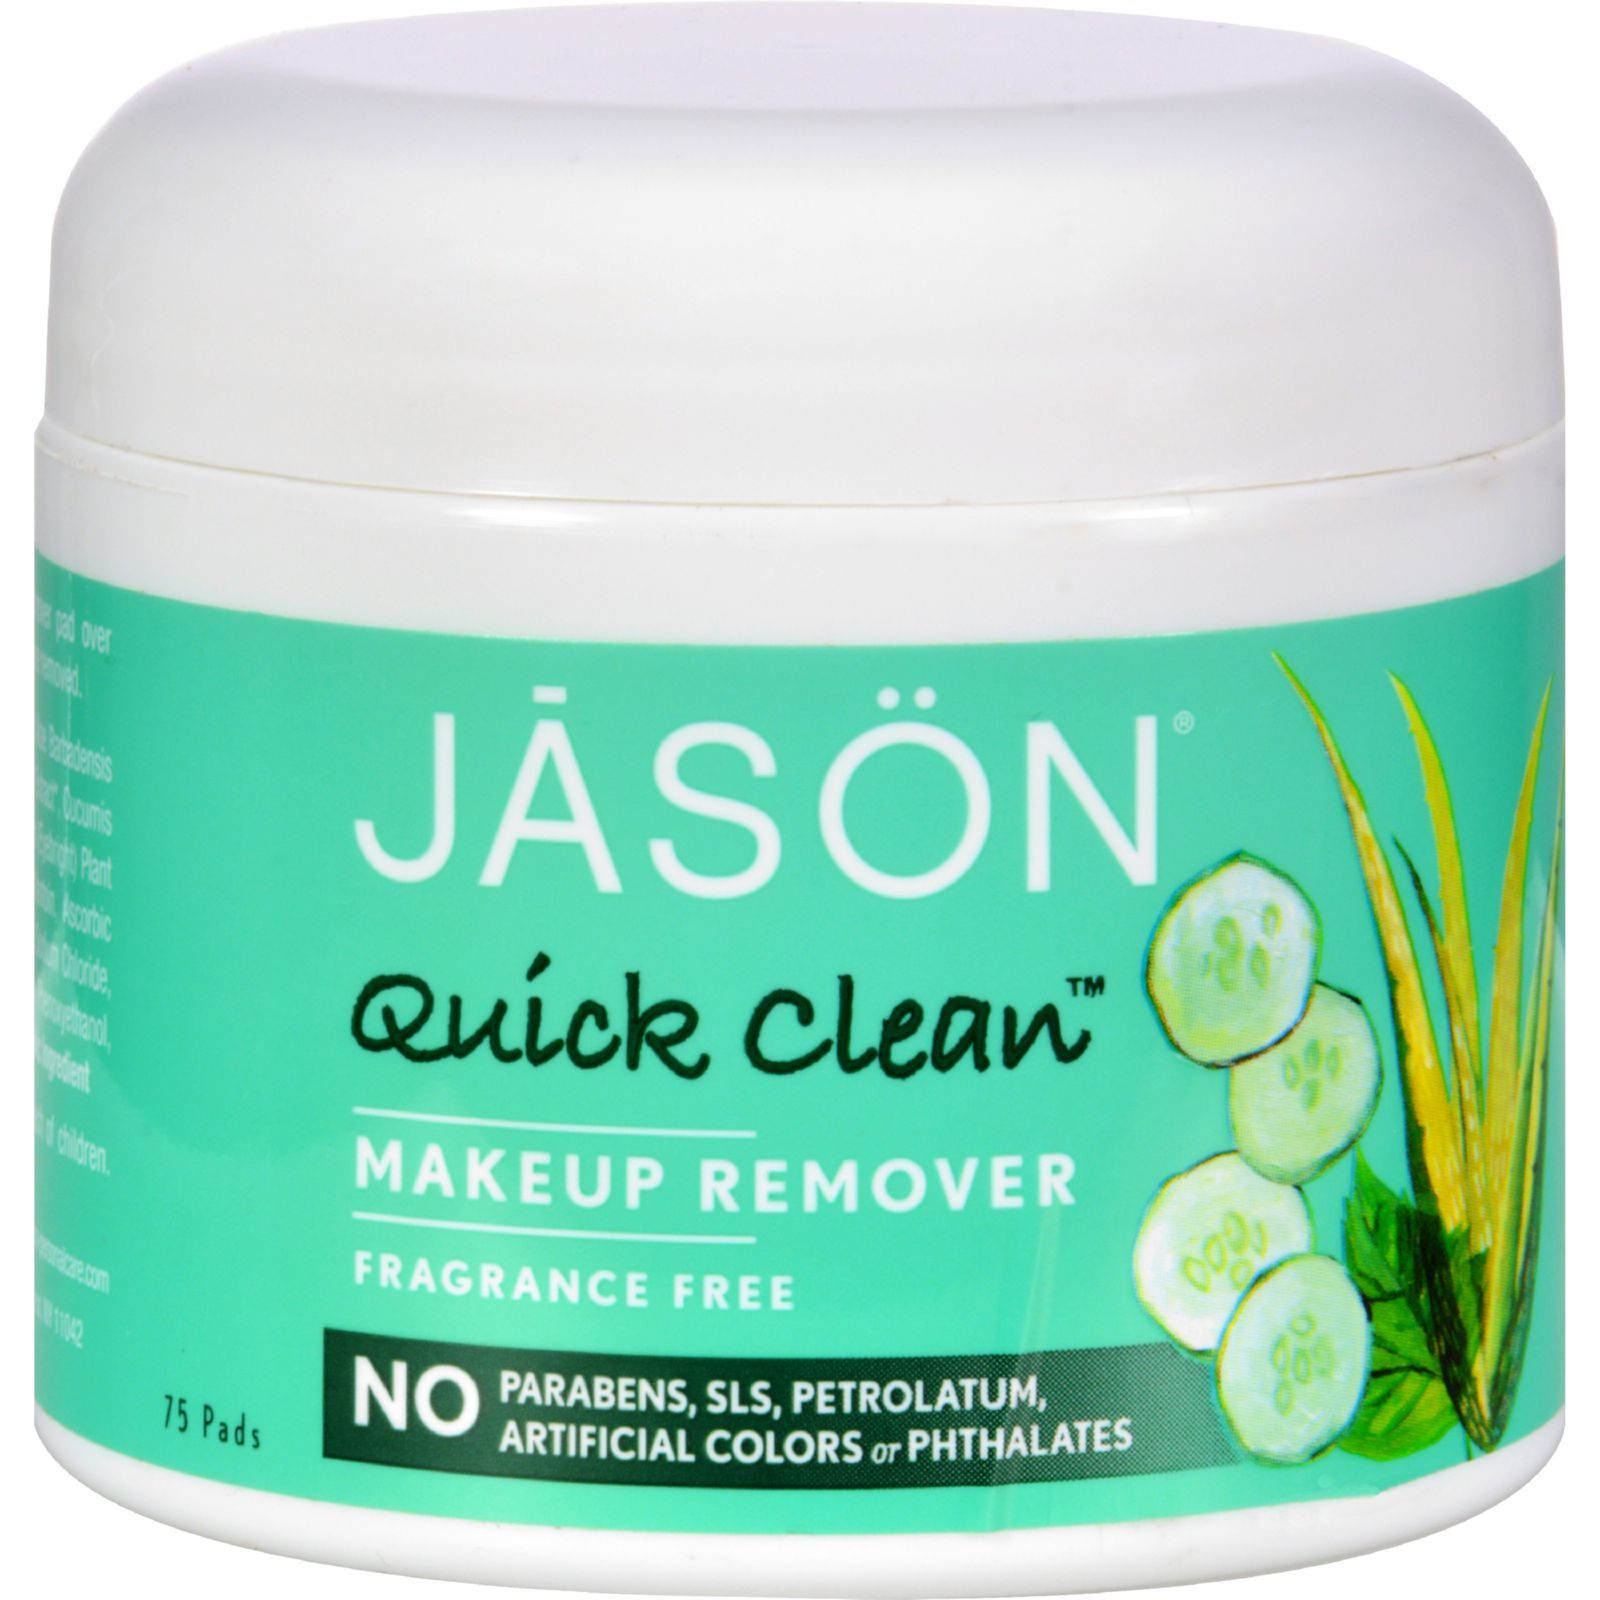 Jason Quick Clean Makeup Remover Fragrance Free 75 Pads